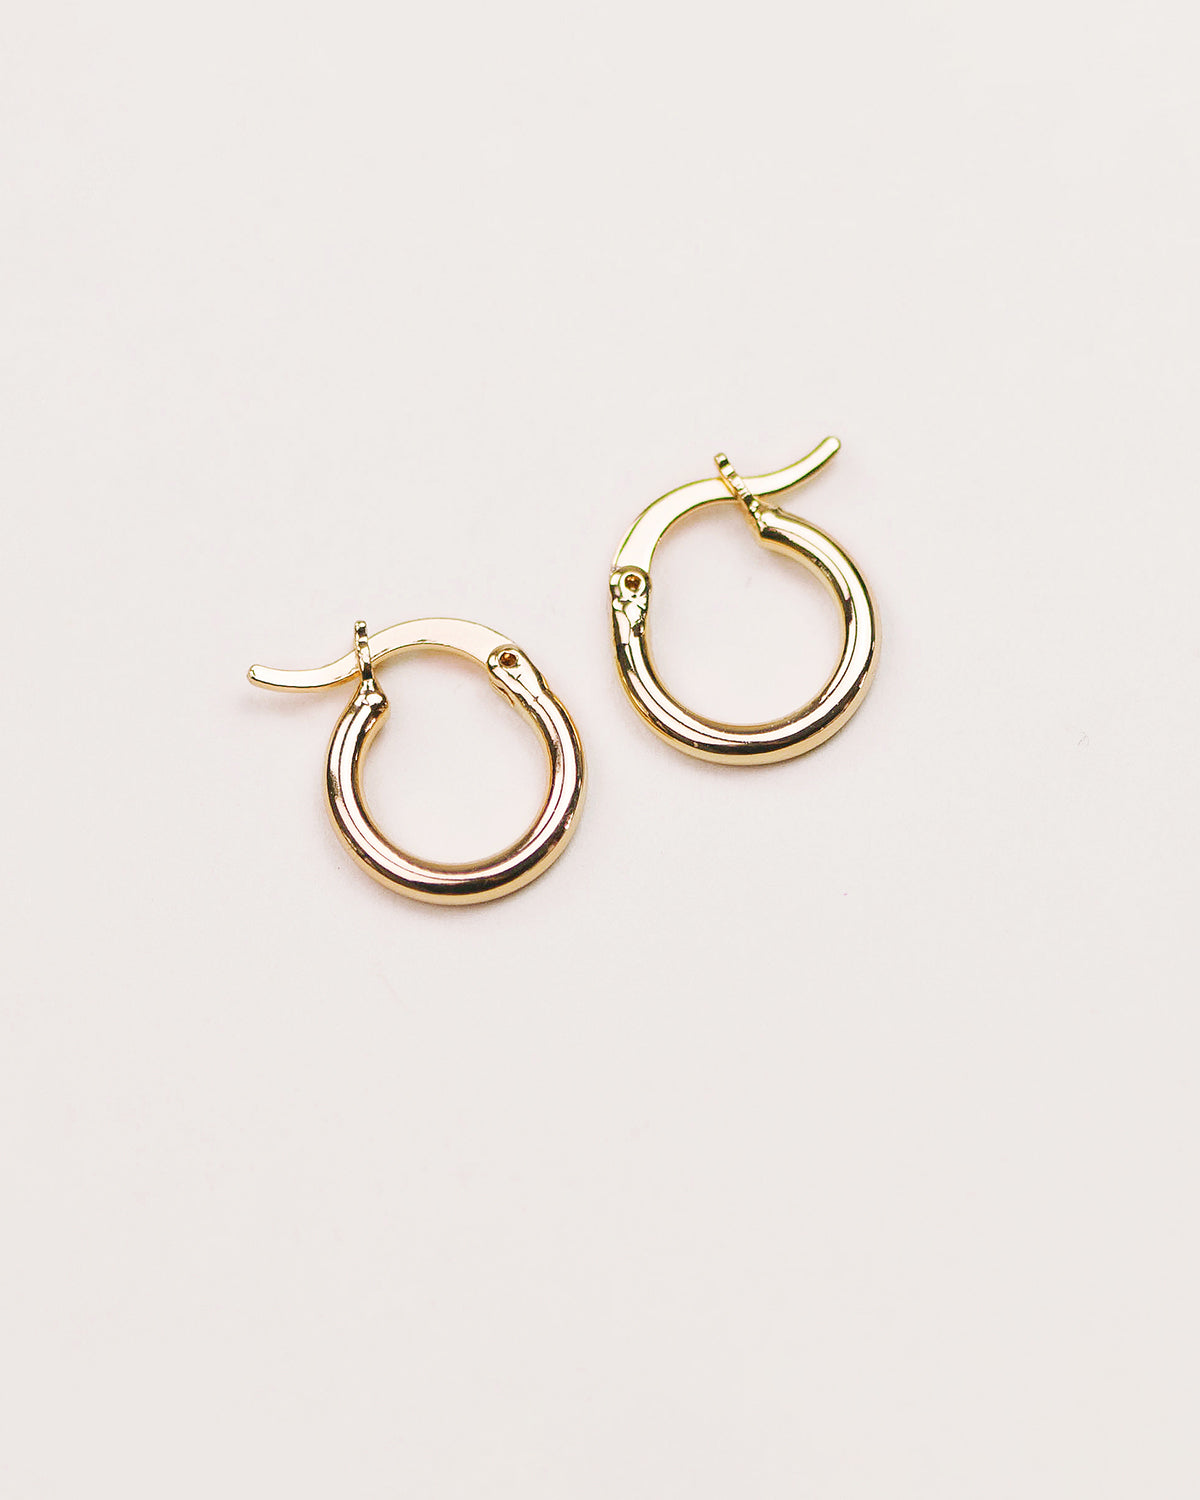 Image of Hilda Simple Hoop Earrings - Mini